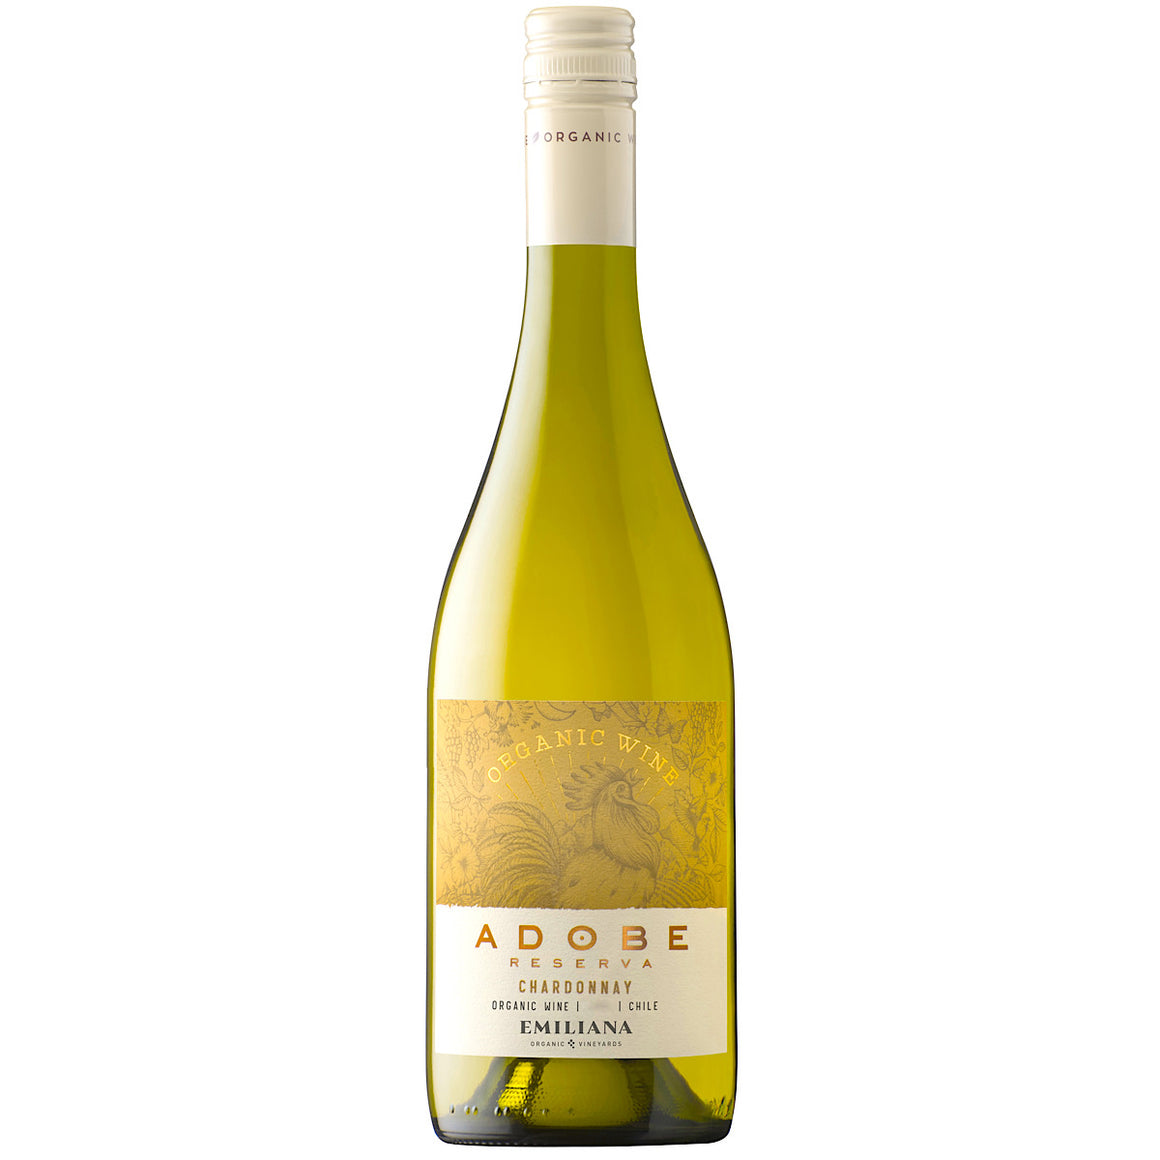 Adobe Reserva Chardonnay 12 Bottle Case